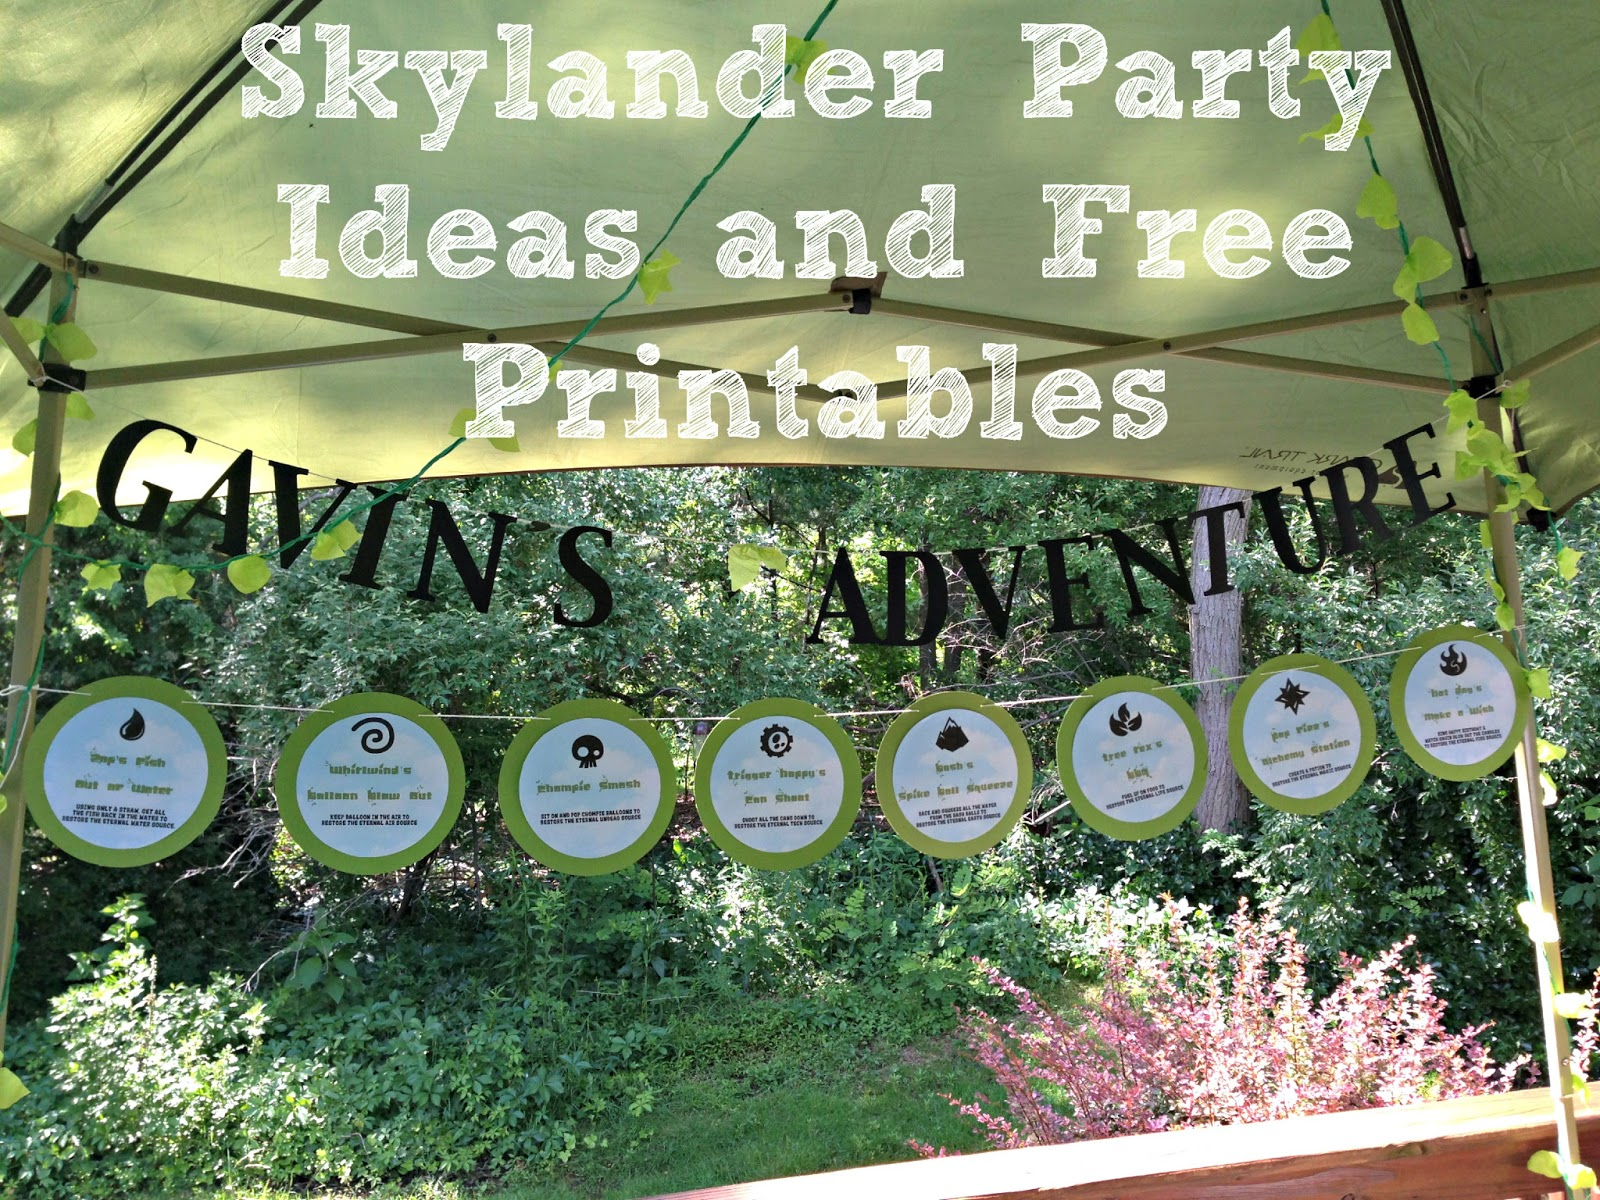 Some Of The Best Things In Life Are Mistakes Skylander Birthday Party With Free Printables